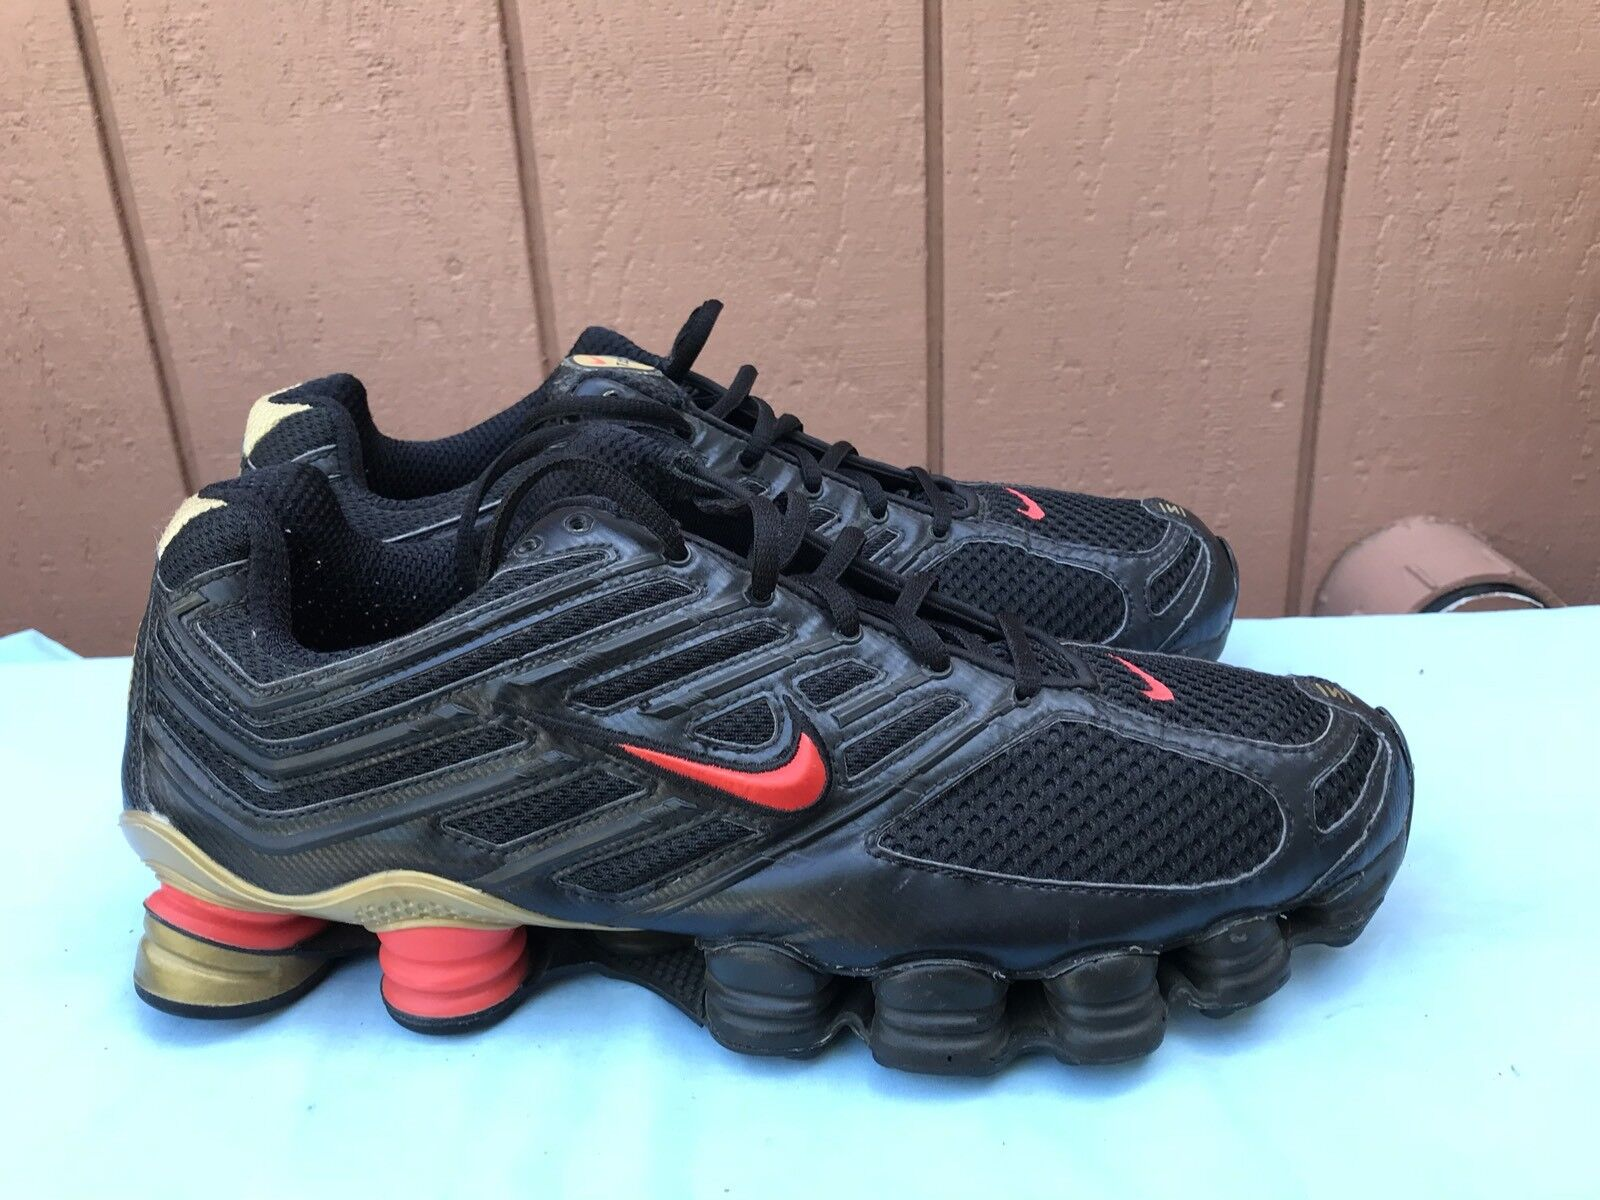 VERY RARE EUC Men's Nike SHOX TL 4 US 11.5 Black Red Athletic Running Shoes A6 best-selling model of the brand